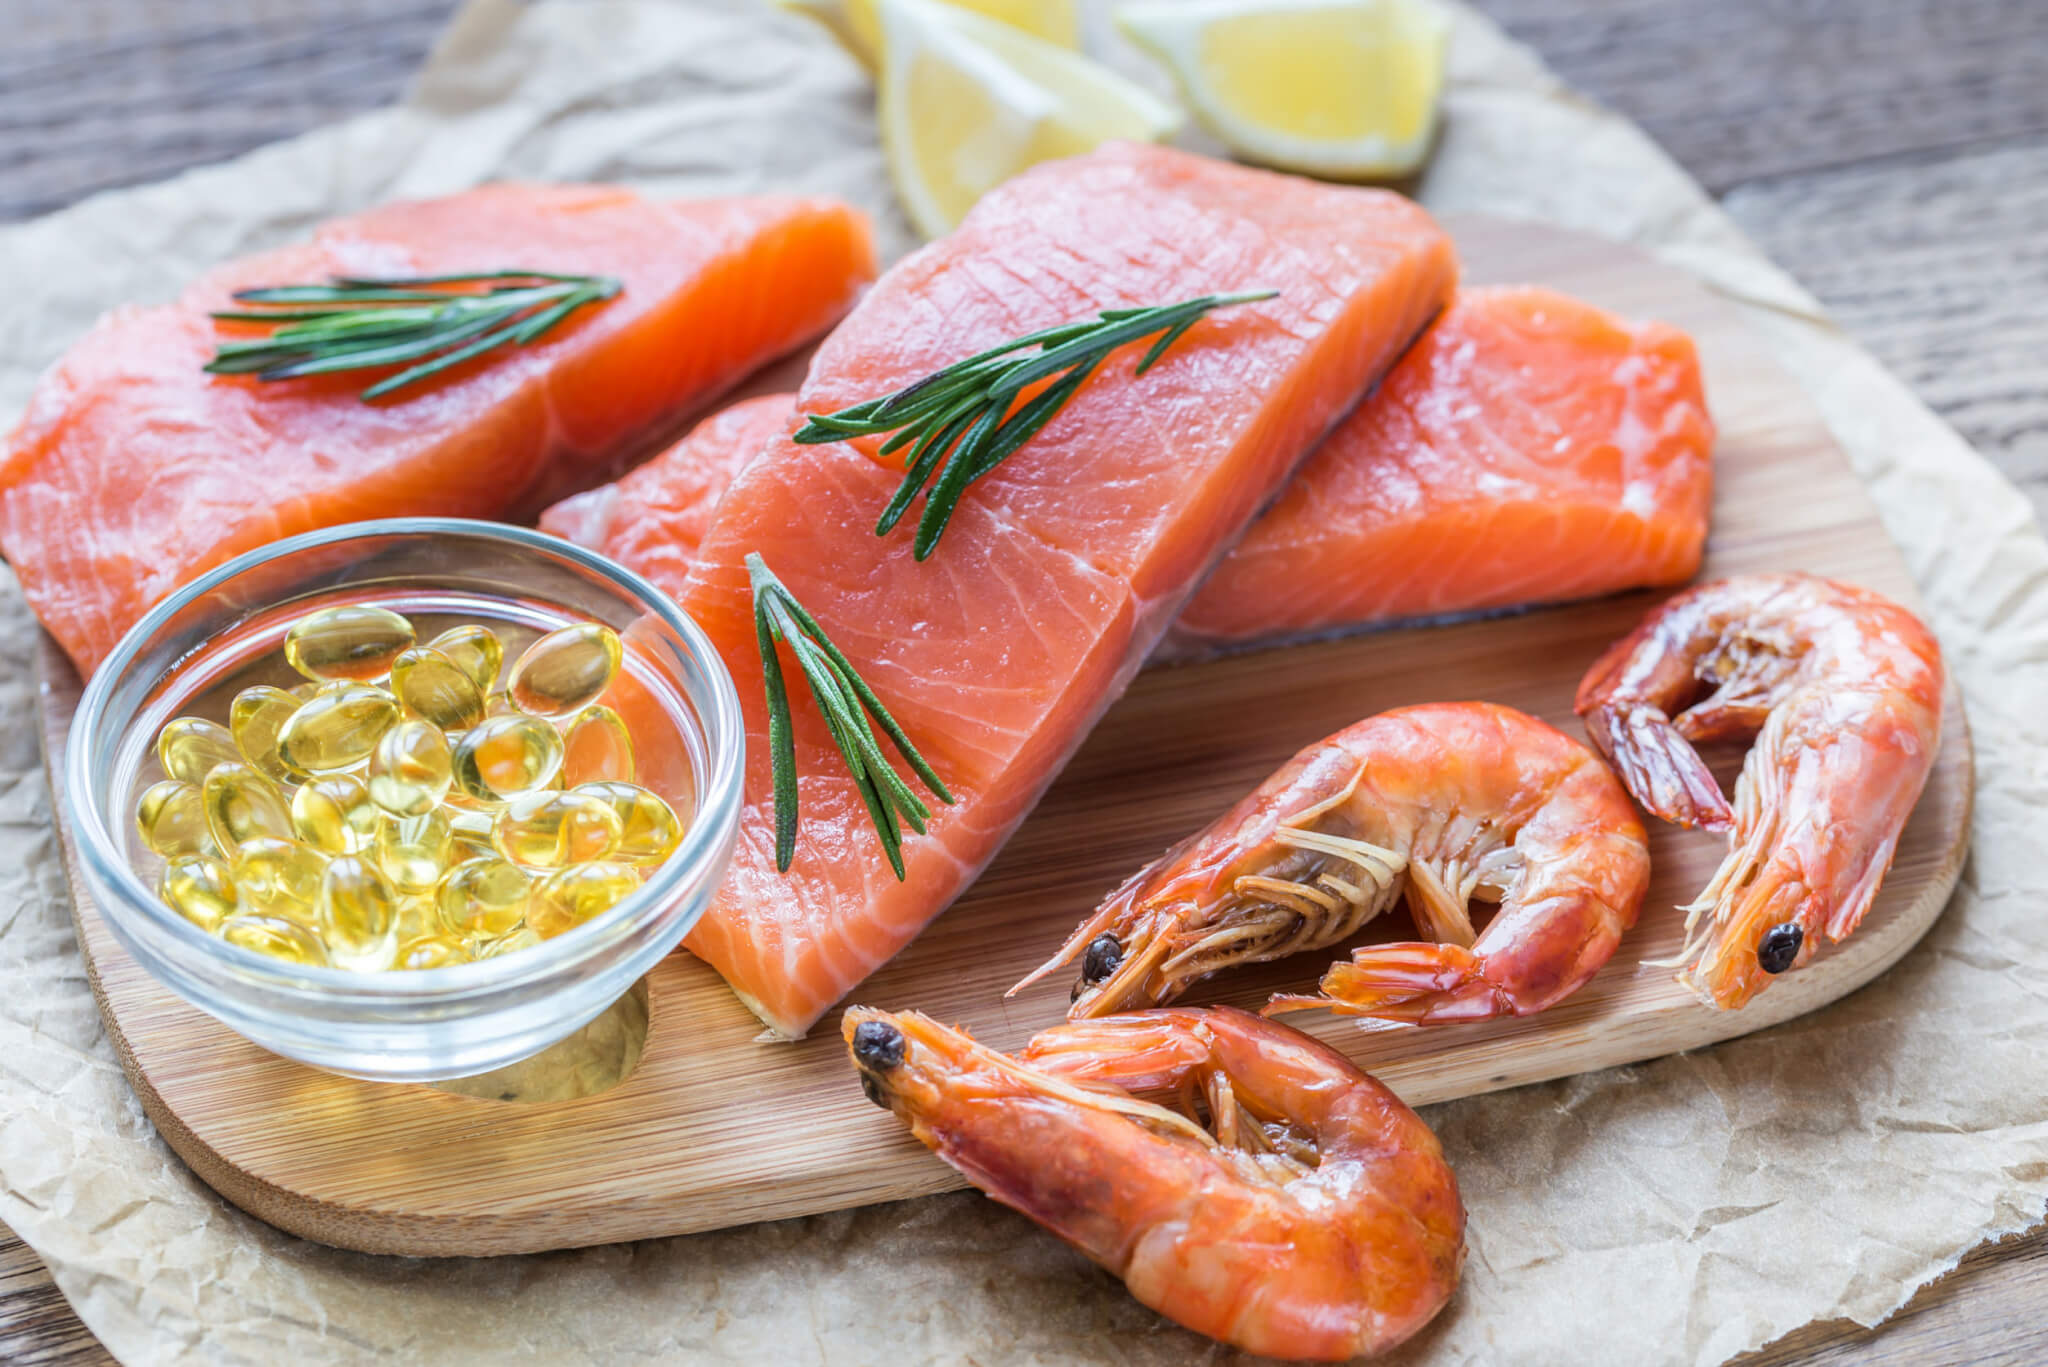 [NEWS]: Omega-3 Fats Linked to Reduced Heart Disease, Risk of Death